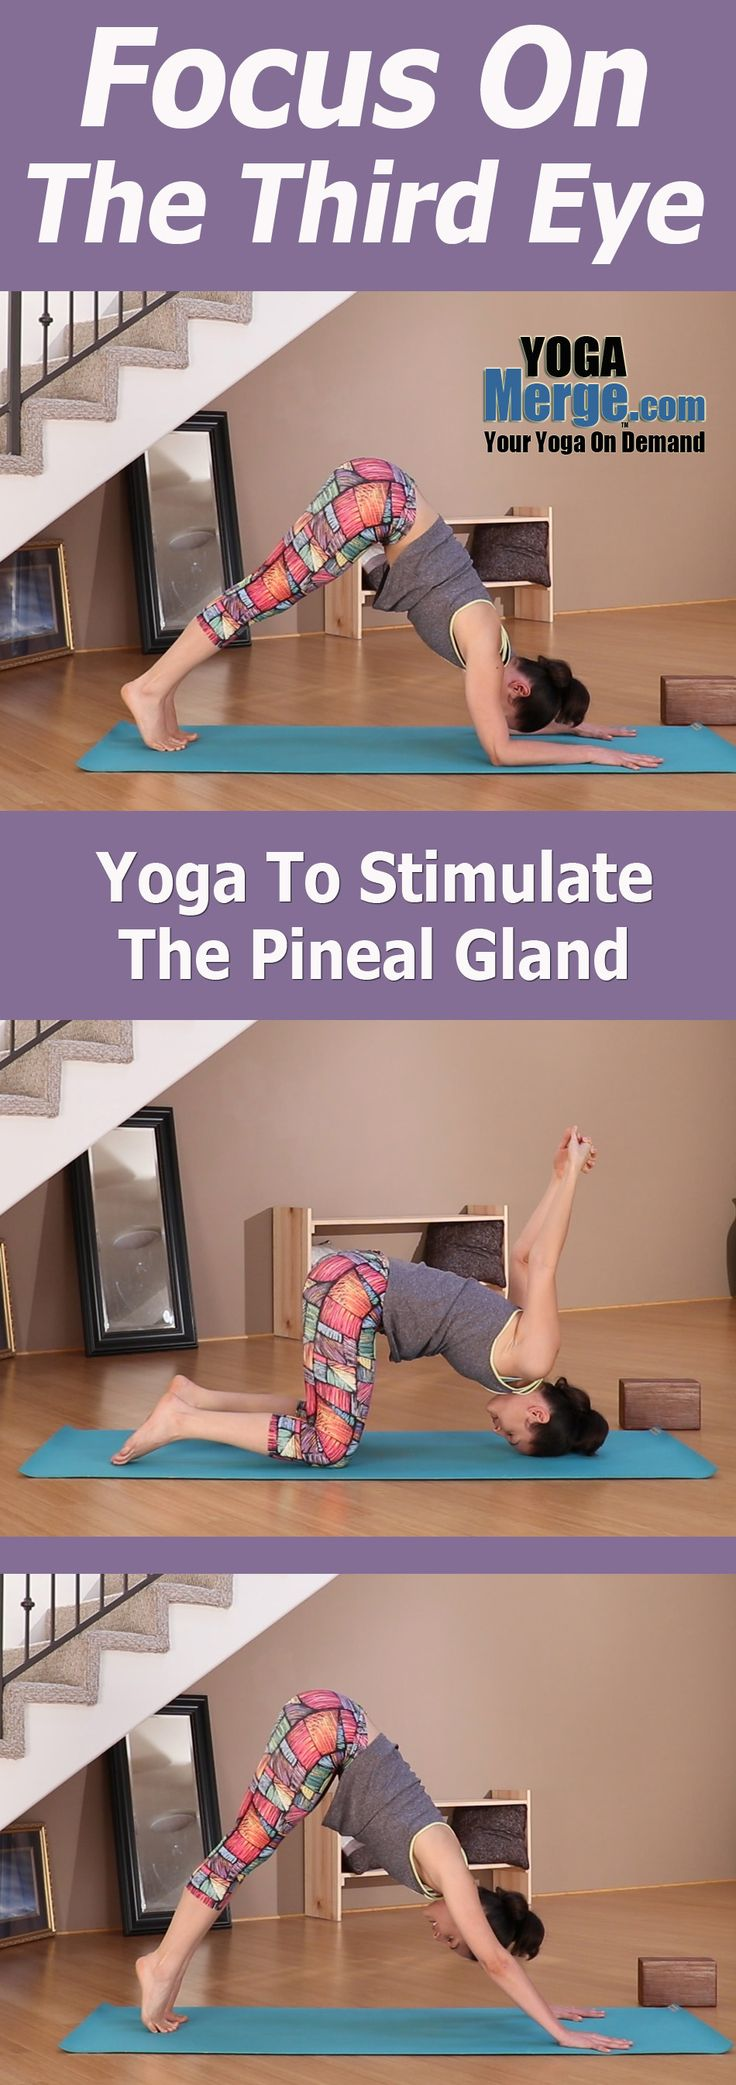 Try out a yoga class with Ariana that will work to stimulate your Pineal Gland or Third Eye. This class will use numerous simple inversions and forward folds to increase blood flow to the brain. Full preview on the site. Online yoga classes for your home practice.